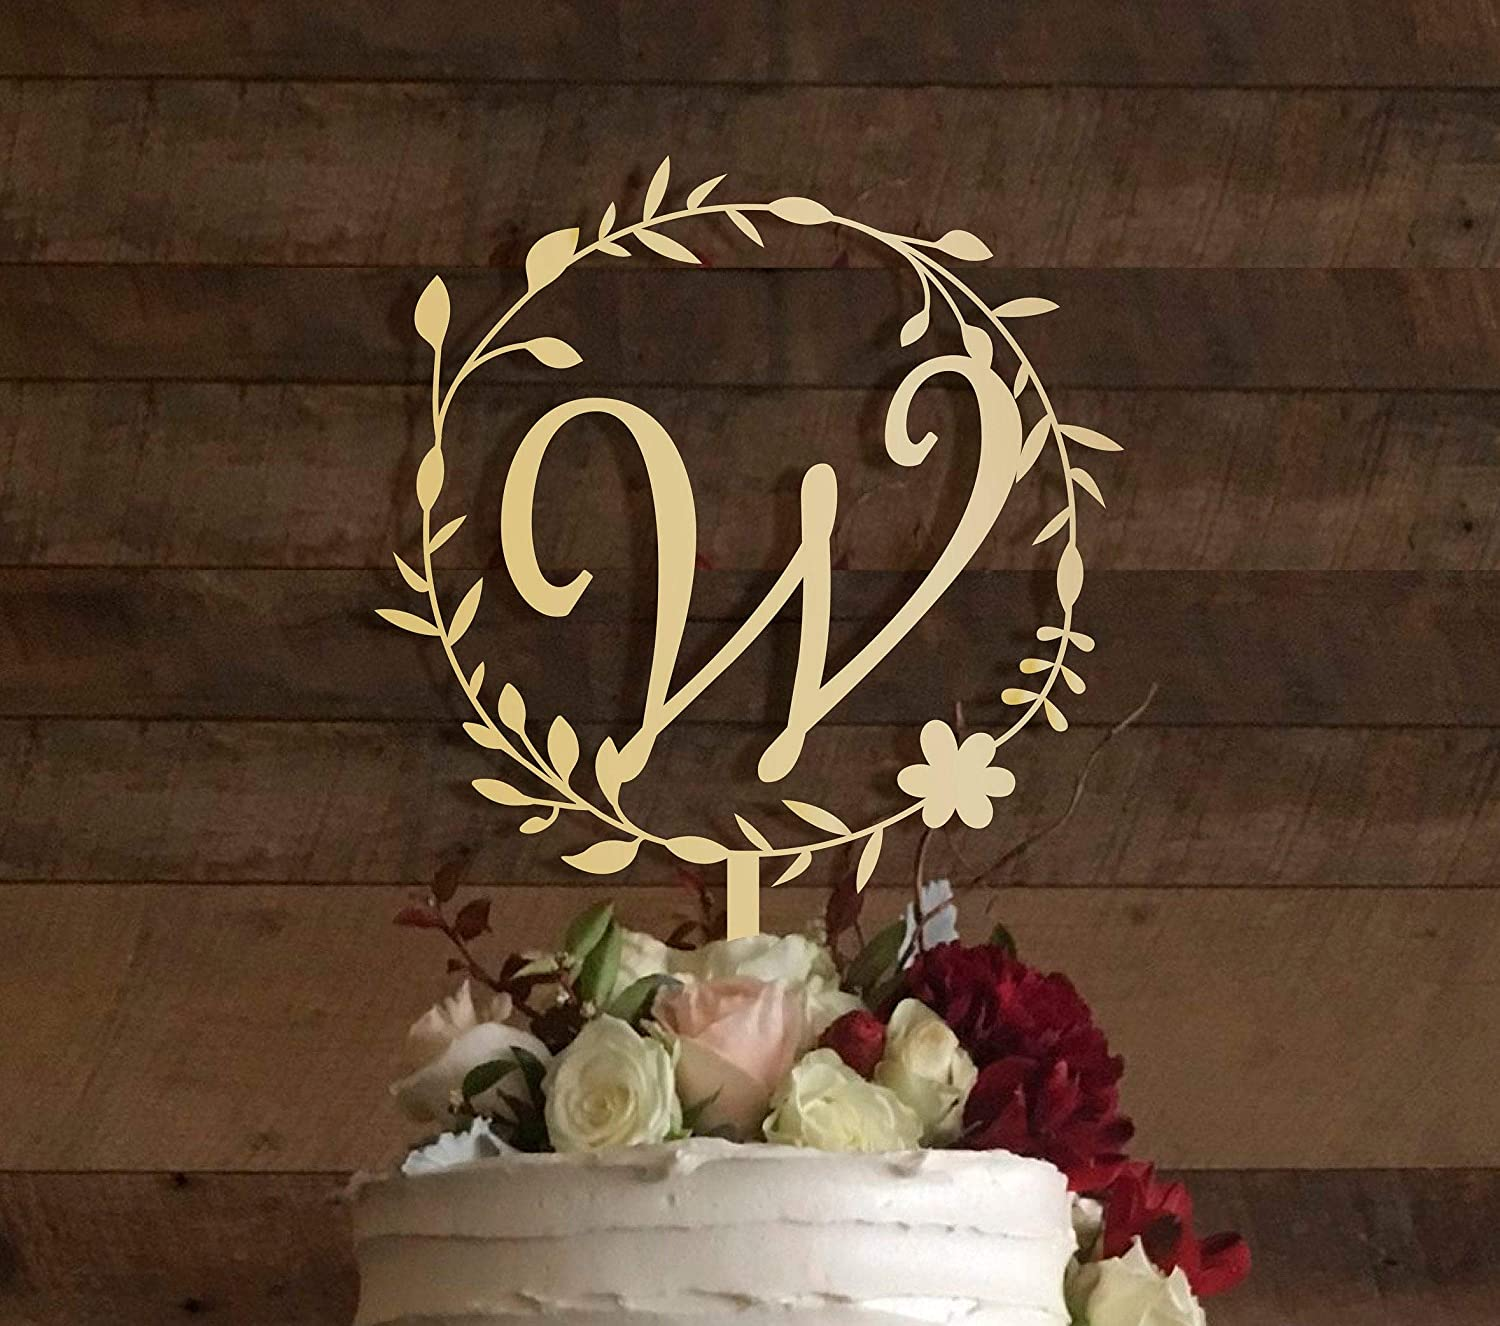 KISKISTONITE Rustic Wedding Cake Topper, Initial Cake Topper, Monogram Cake Topper W ,Wedding Gold Cake Decoration Cake Decorating